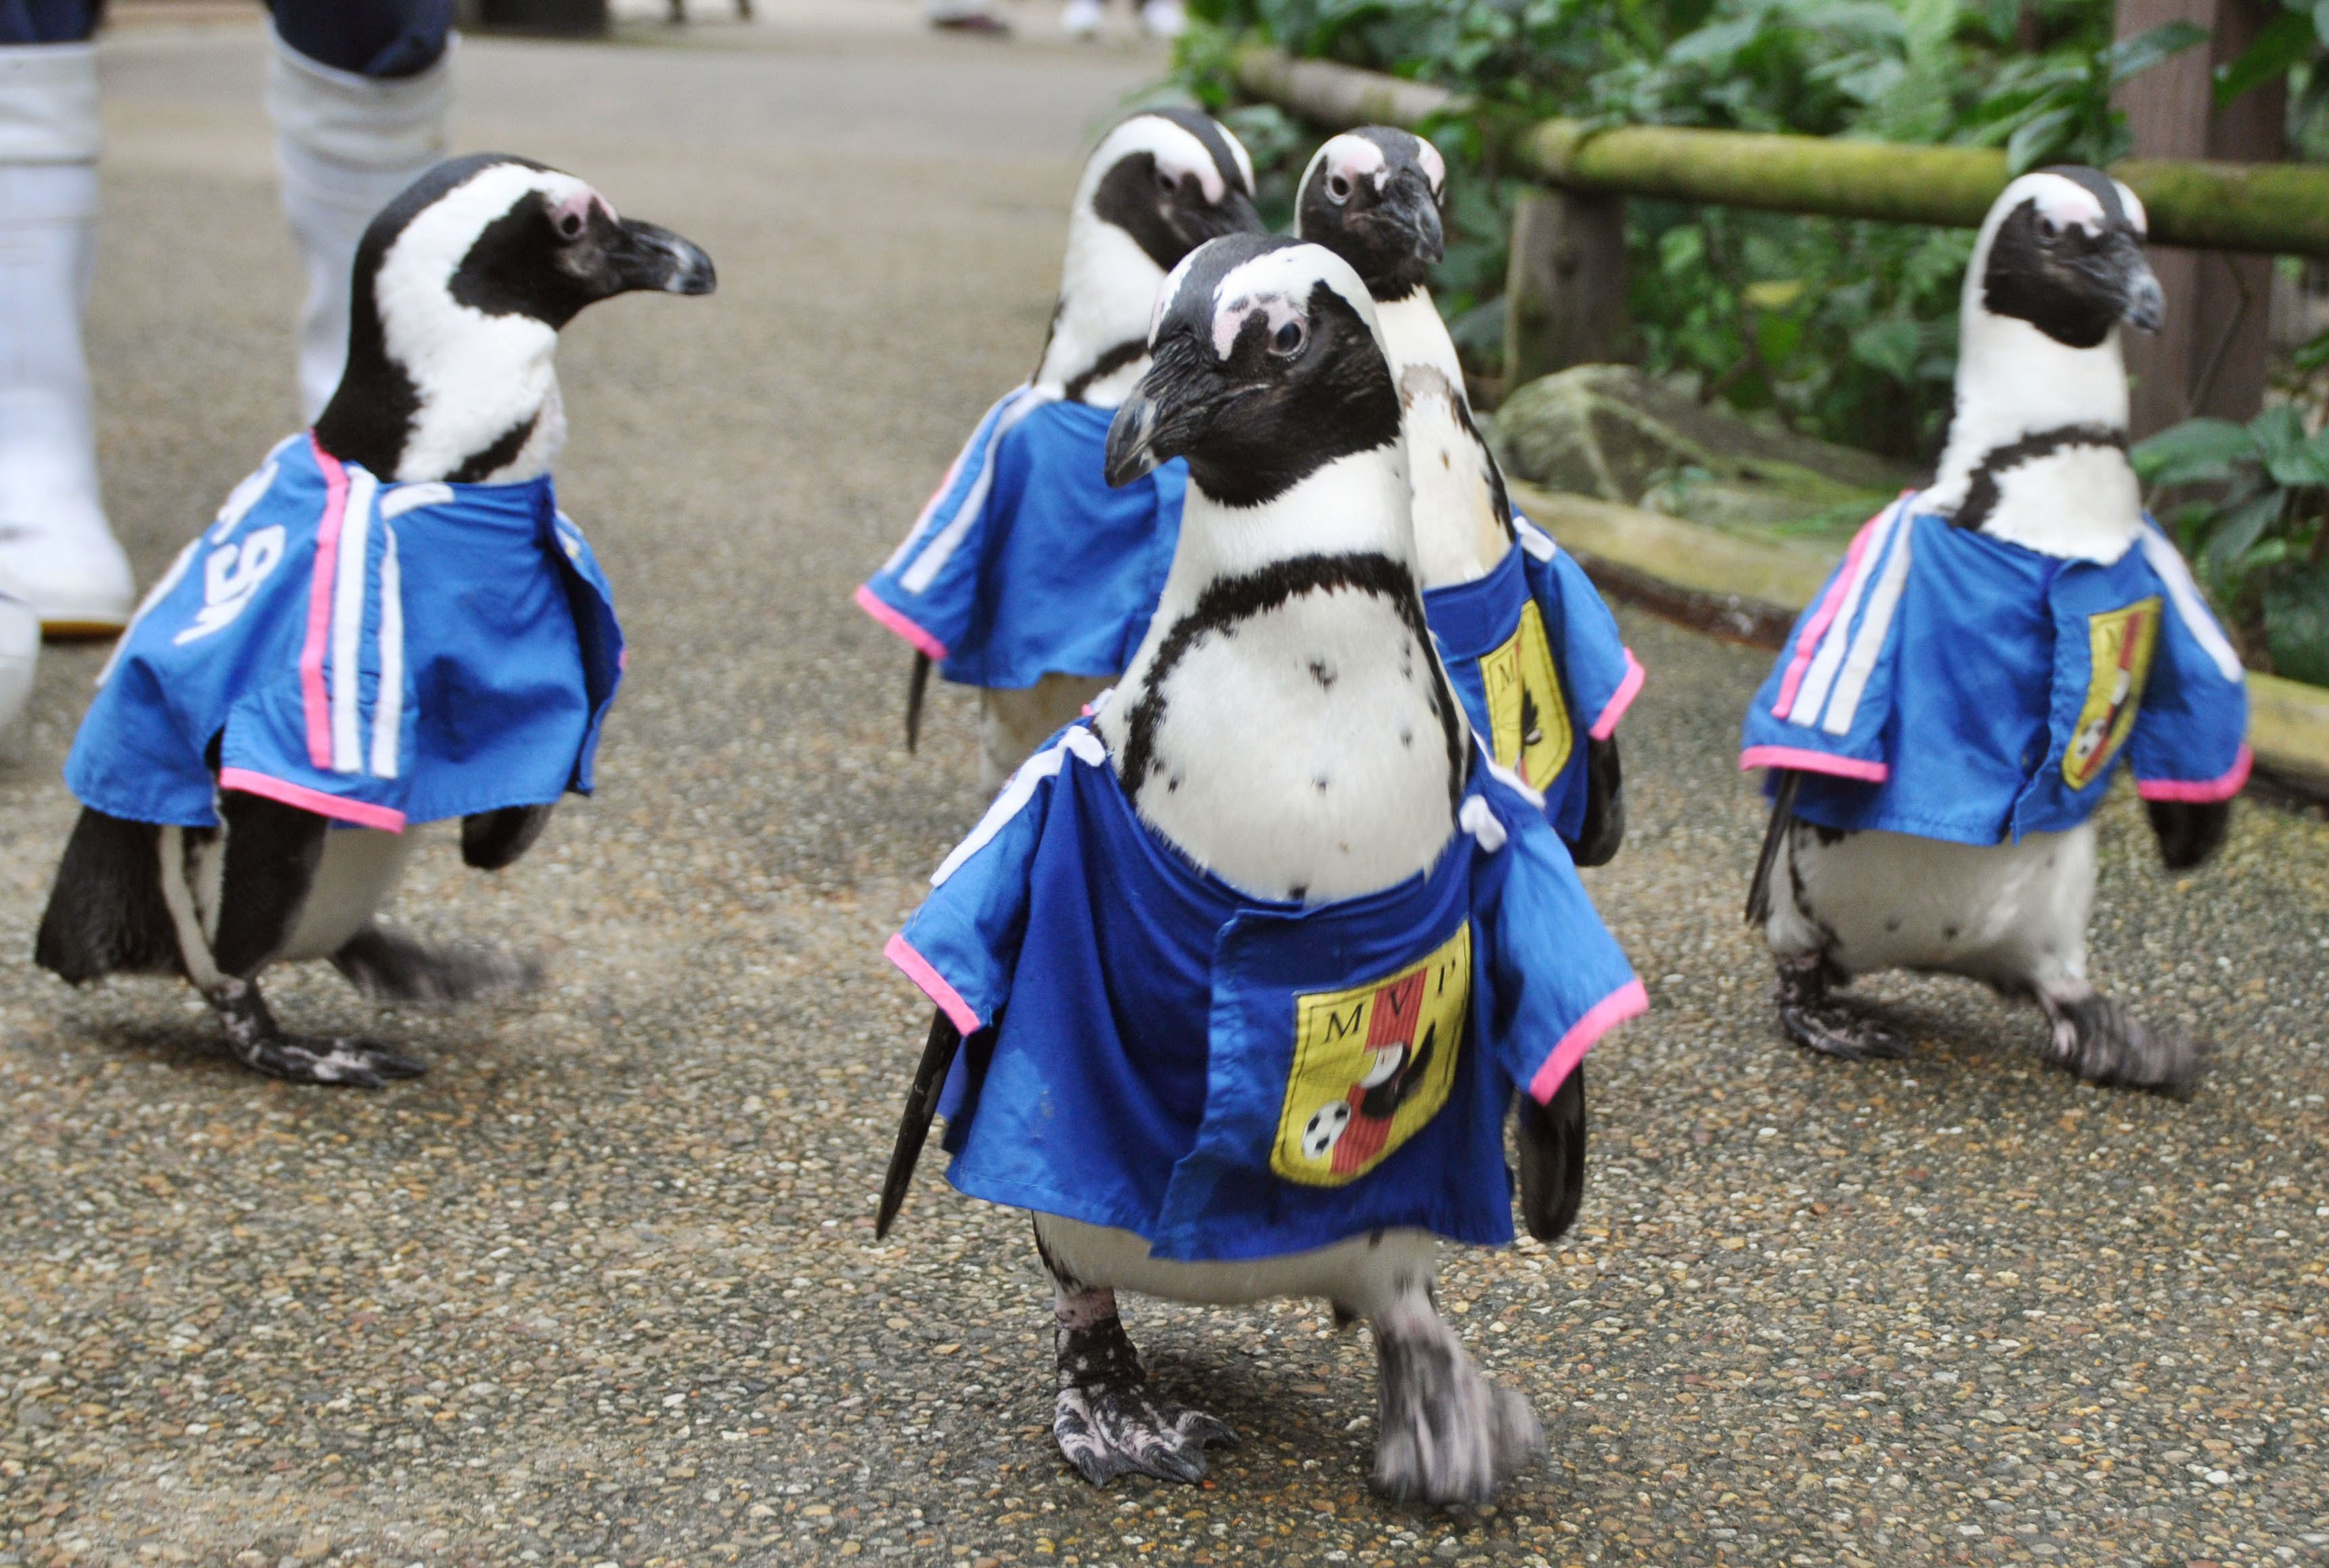 Penguins, each wearing a uniform similar to the jersey of Japan's national football team, walk in Matsue Vogel Park in Matsue, Japan, on June 11, 2014.